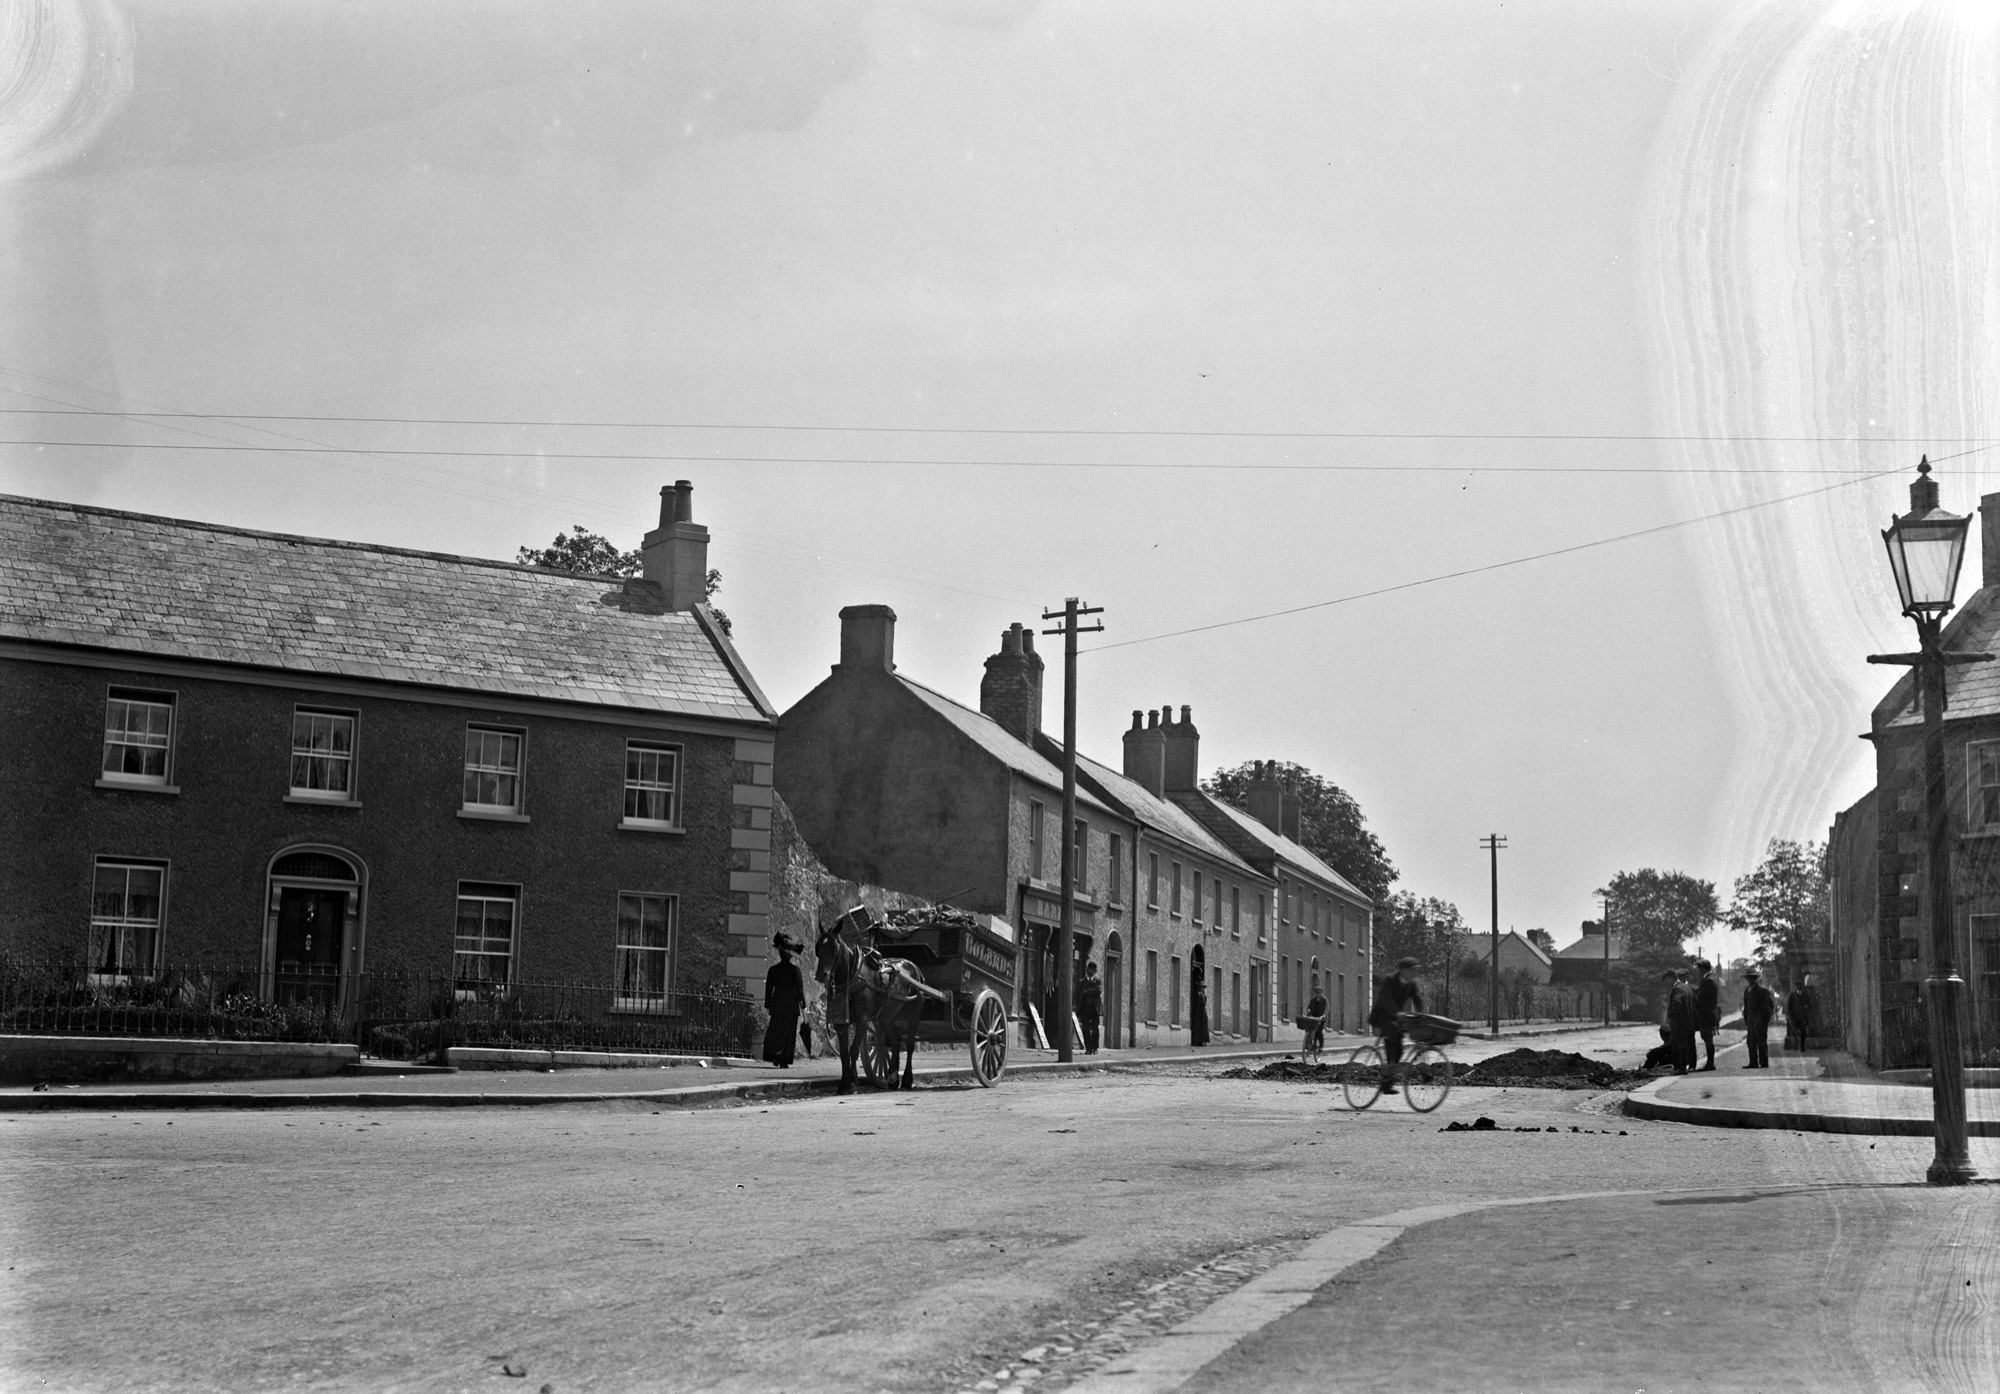 Possibly a general view of Malahide, Co. Dublin